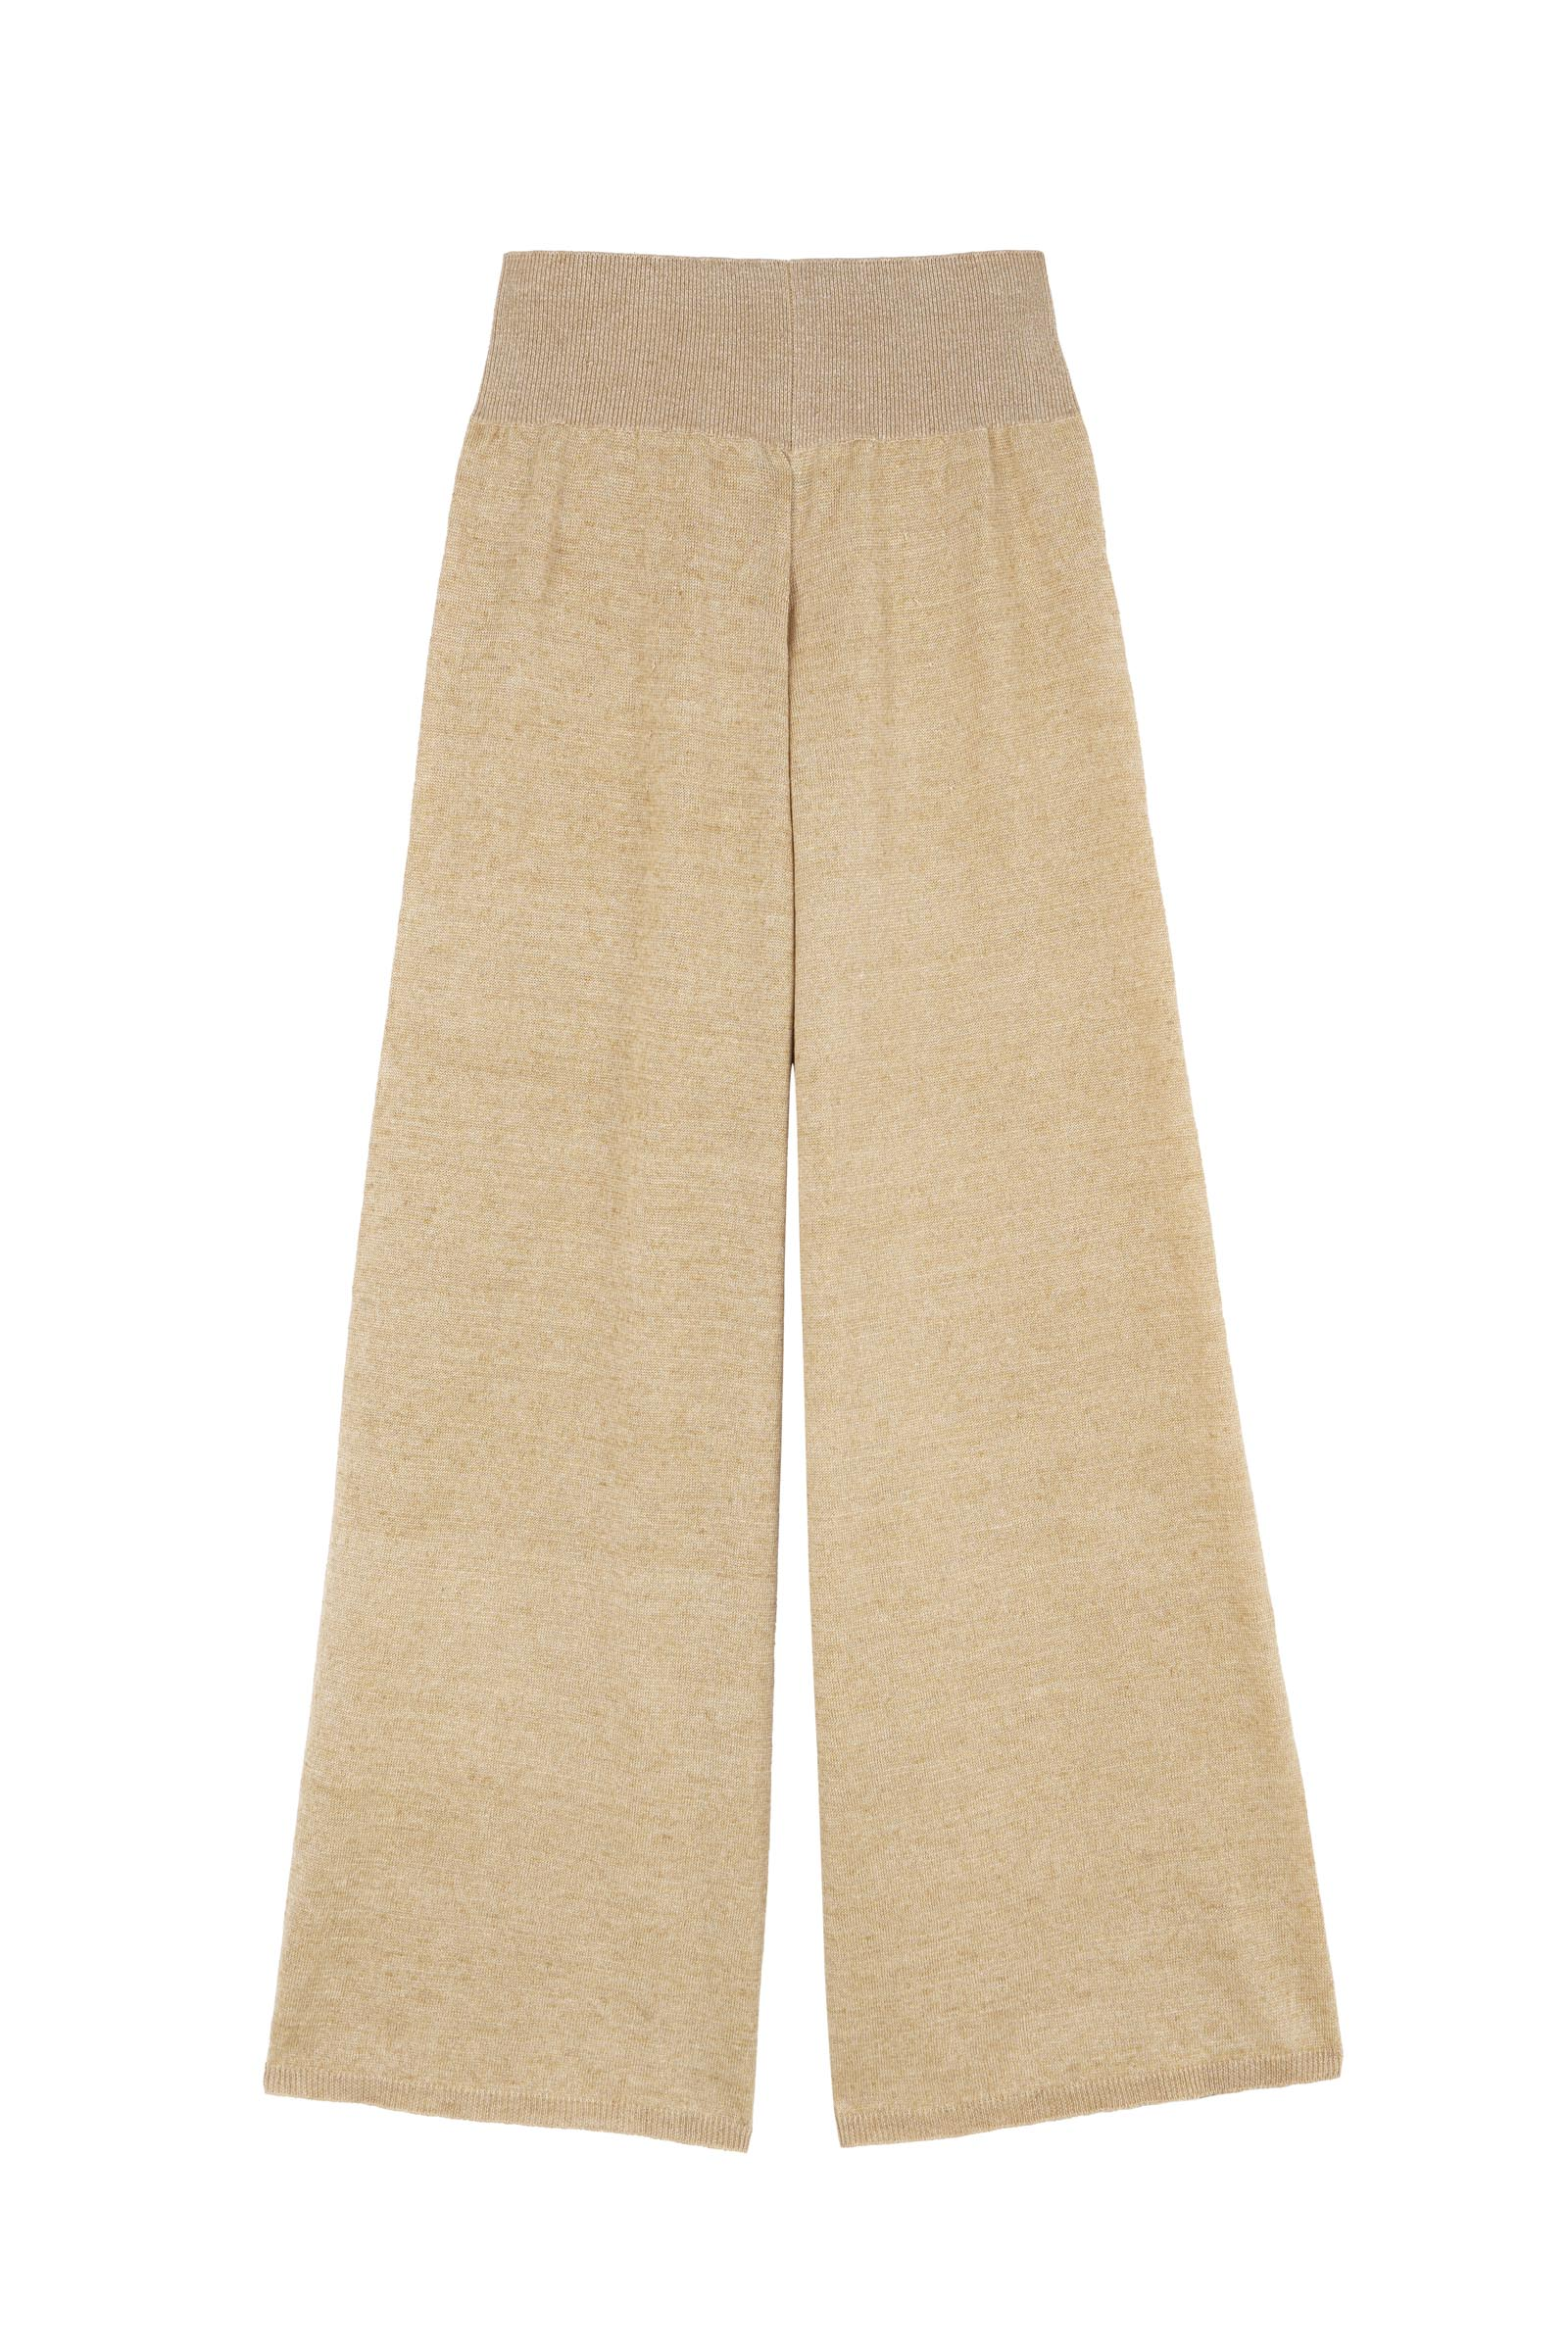 MARINA, GOLD LINEN-KNIT PANTS - Cortana Moda